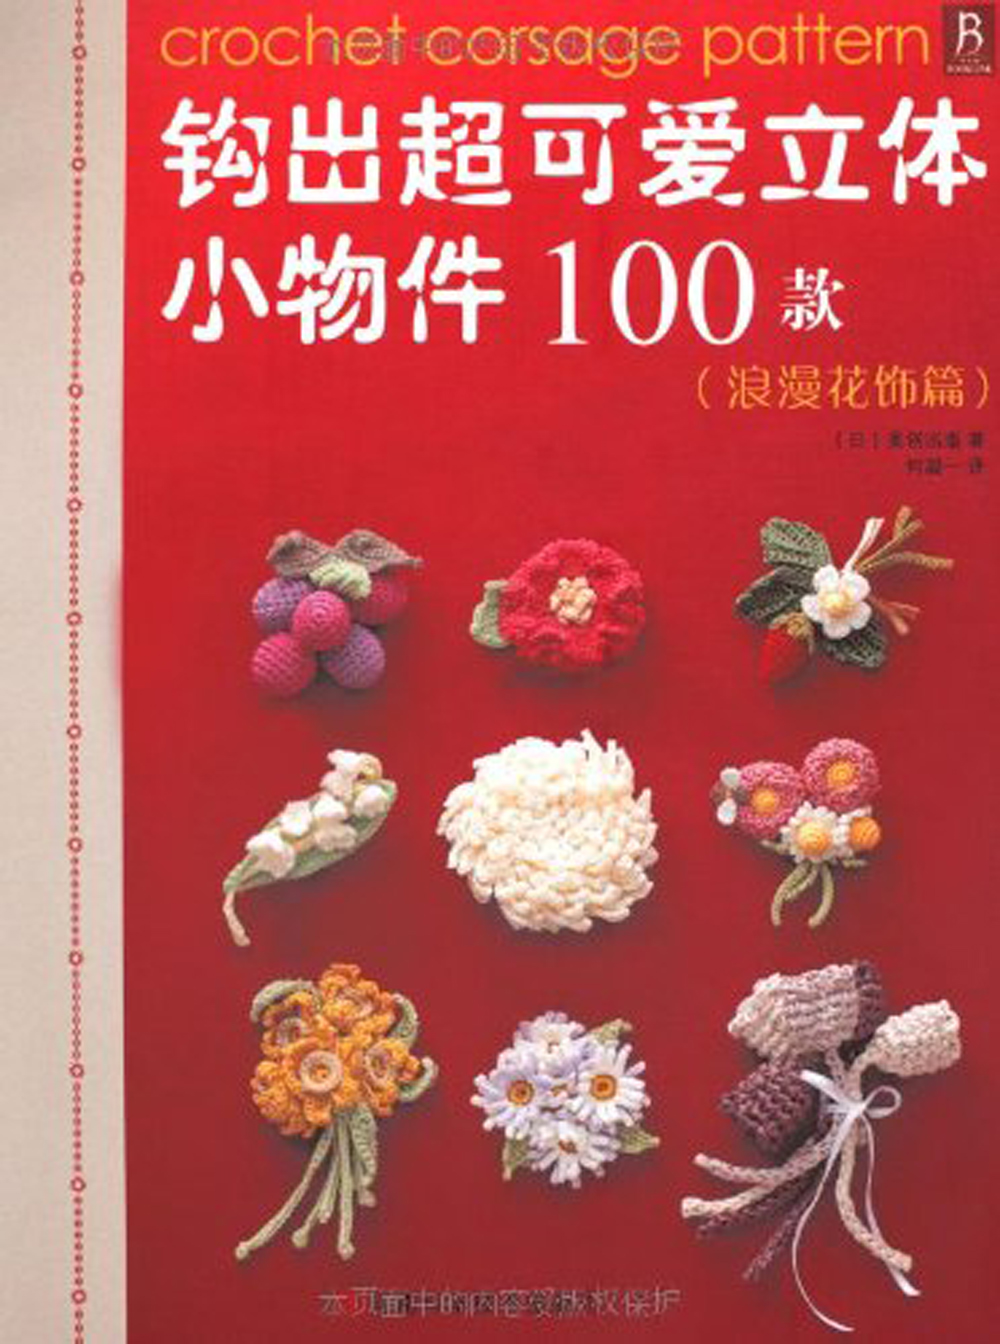 Crochet Corsage Pattern / Weaving Super-cute 3d Small Objects 100 Models Chinese Knitting Book